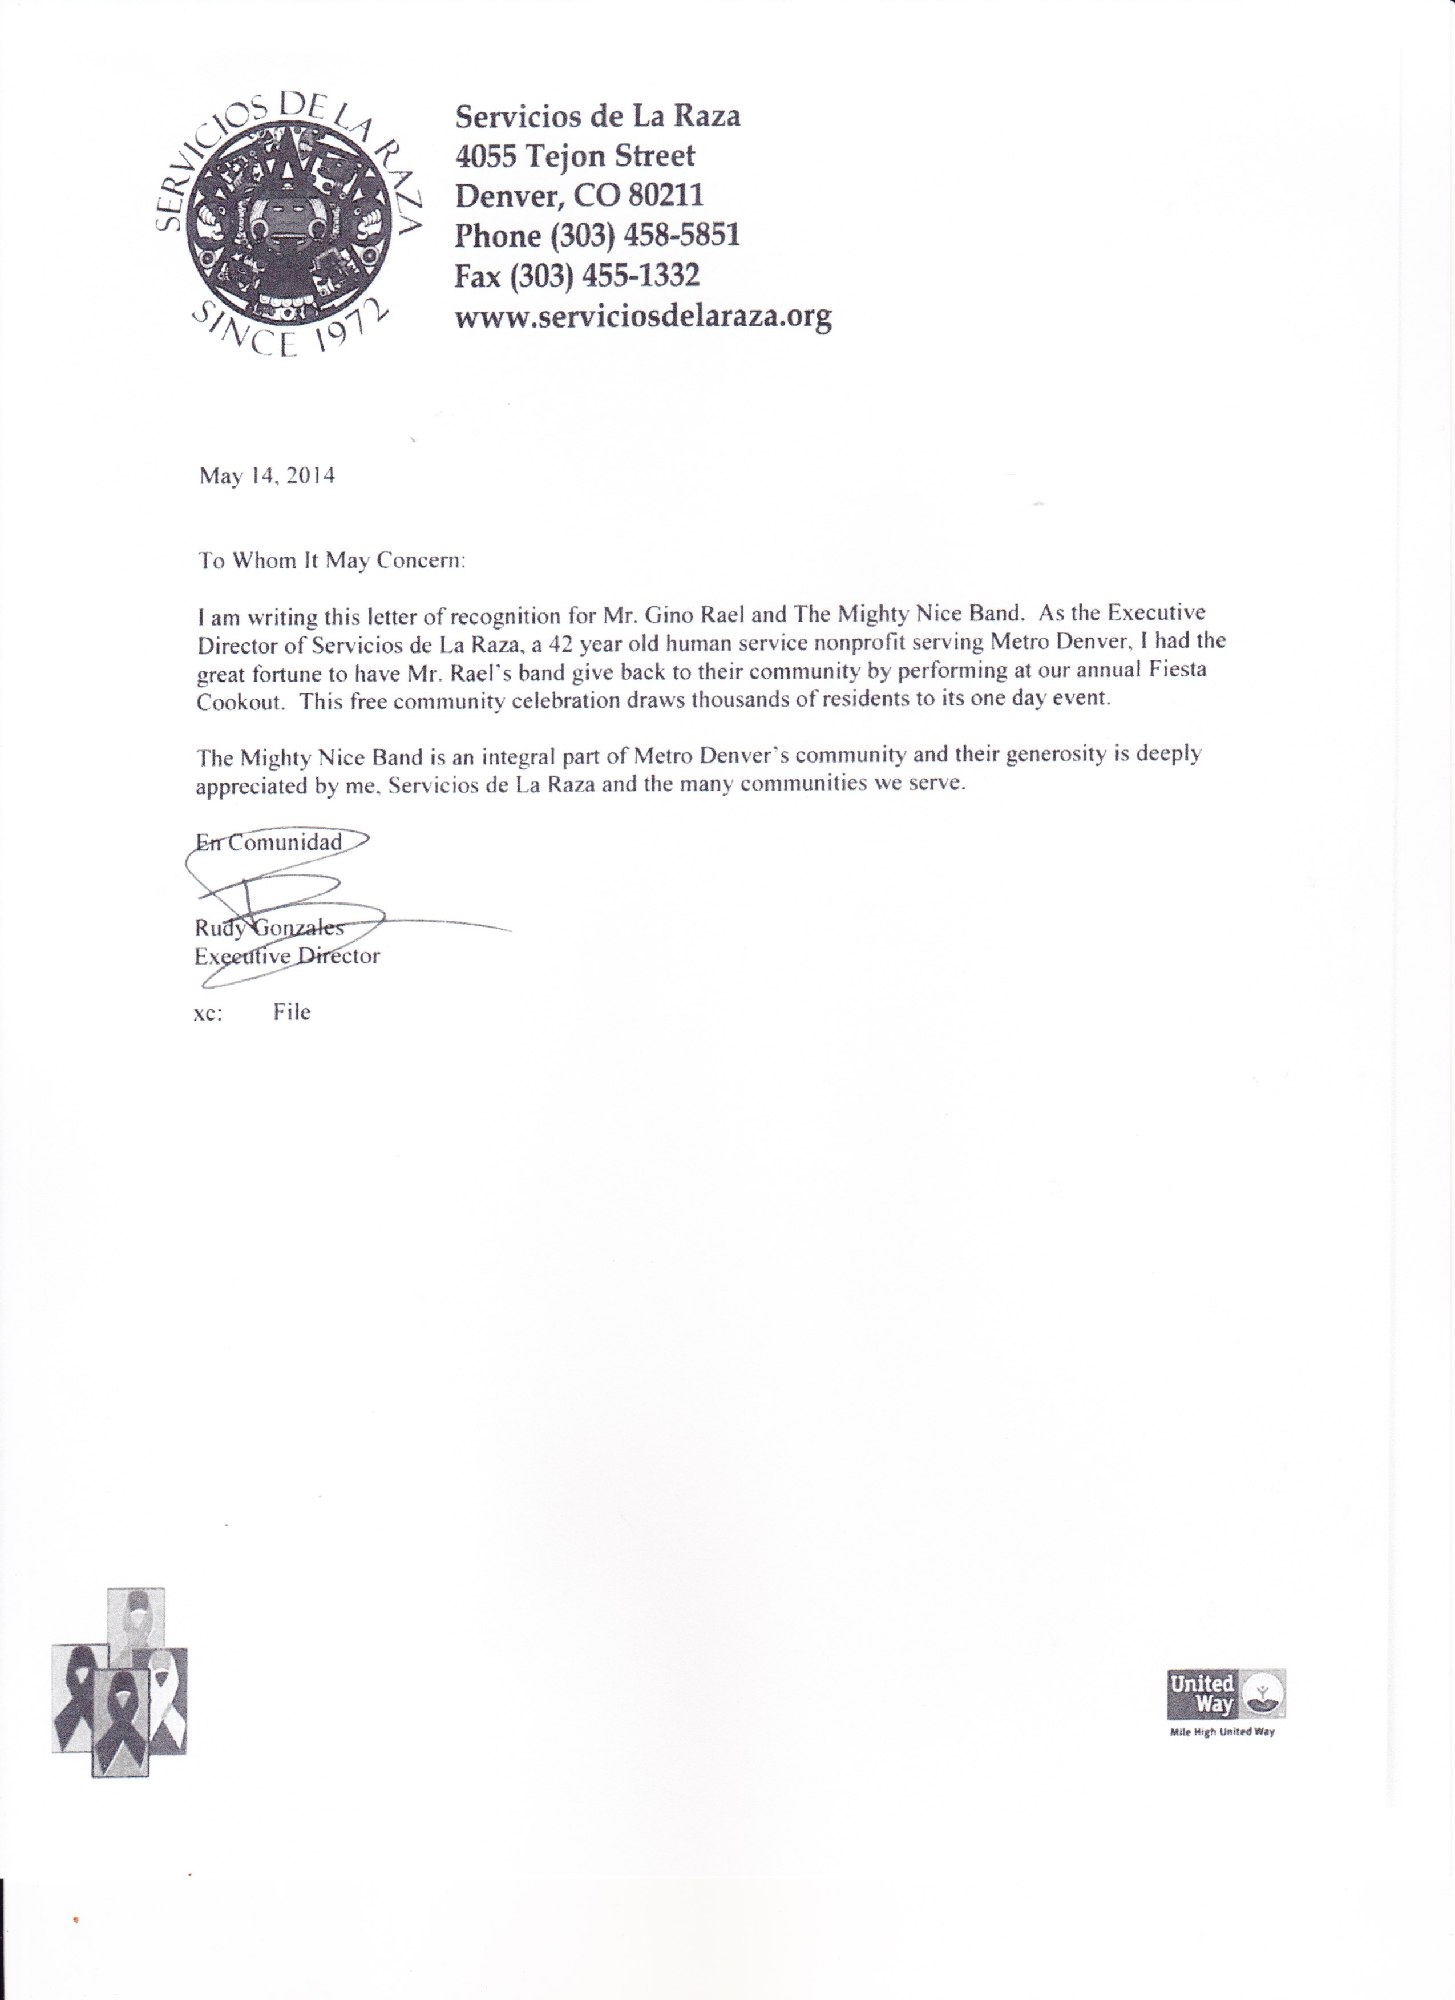 How To Thank Recommendation Letter